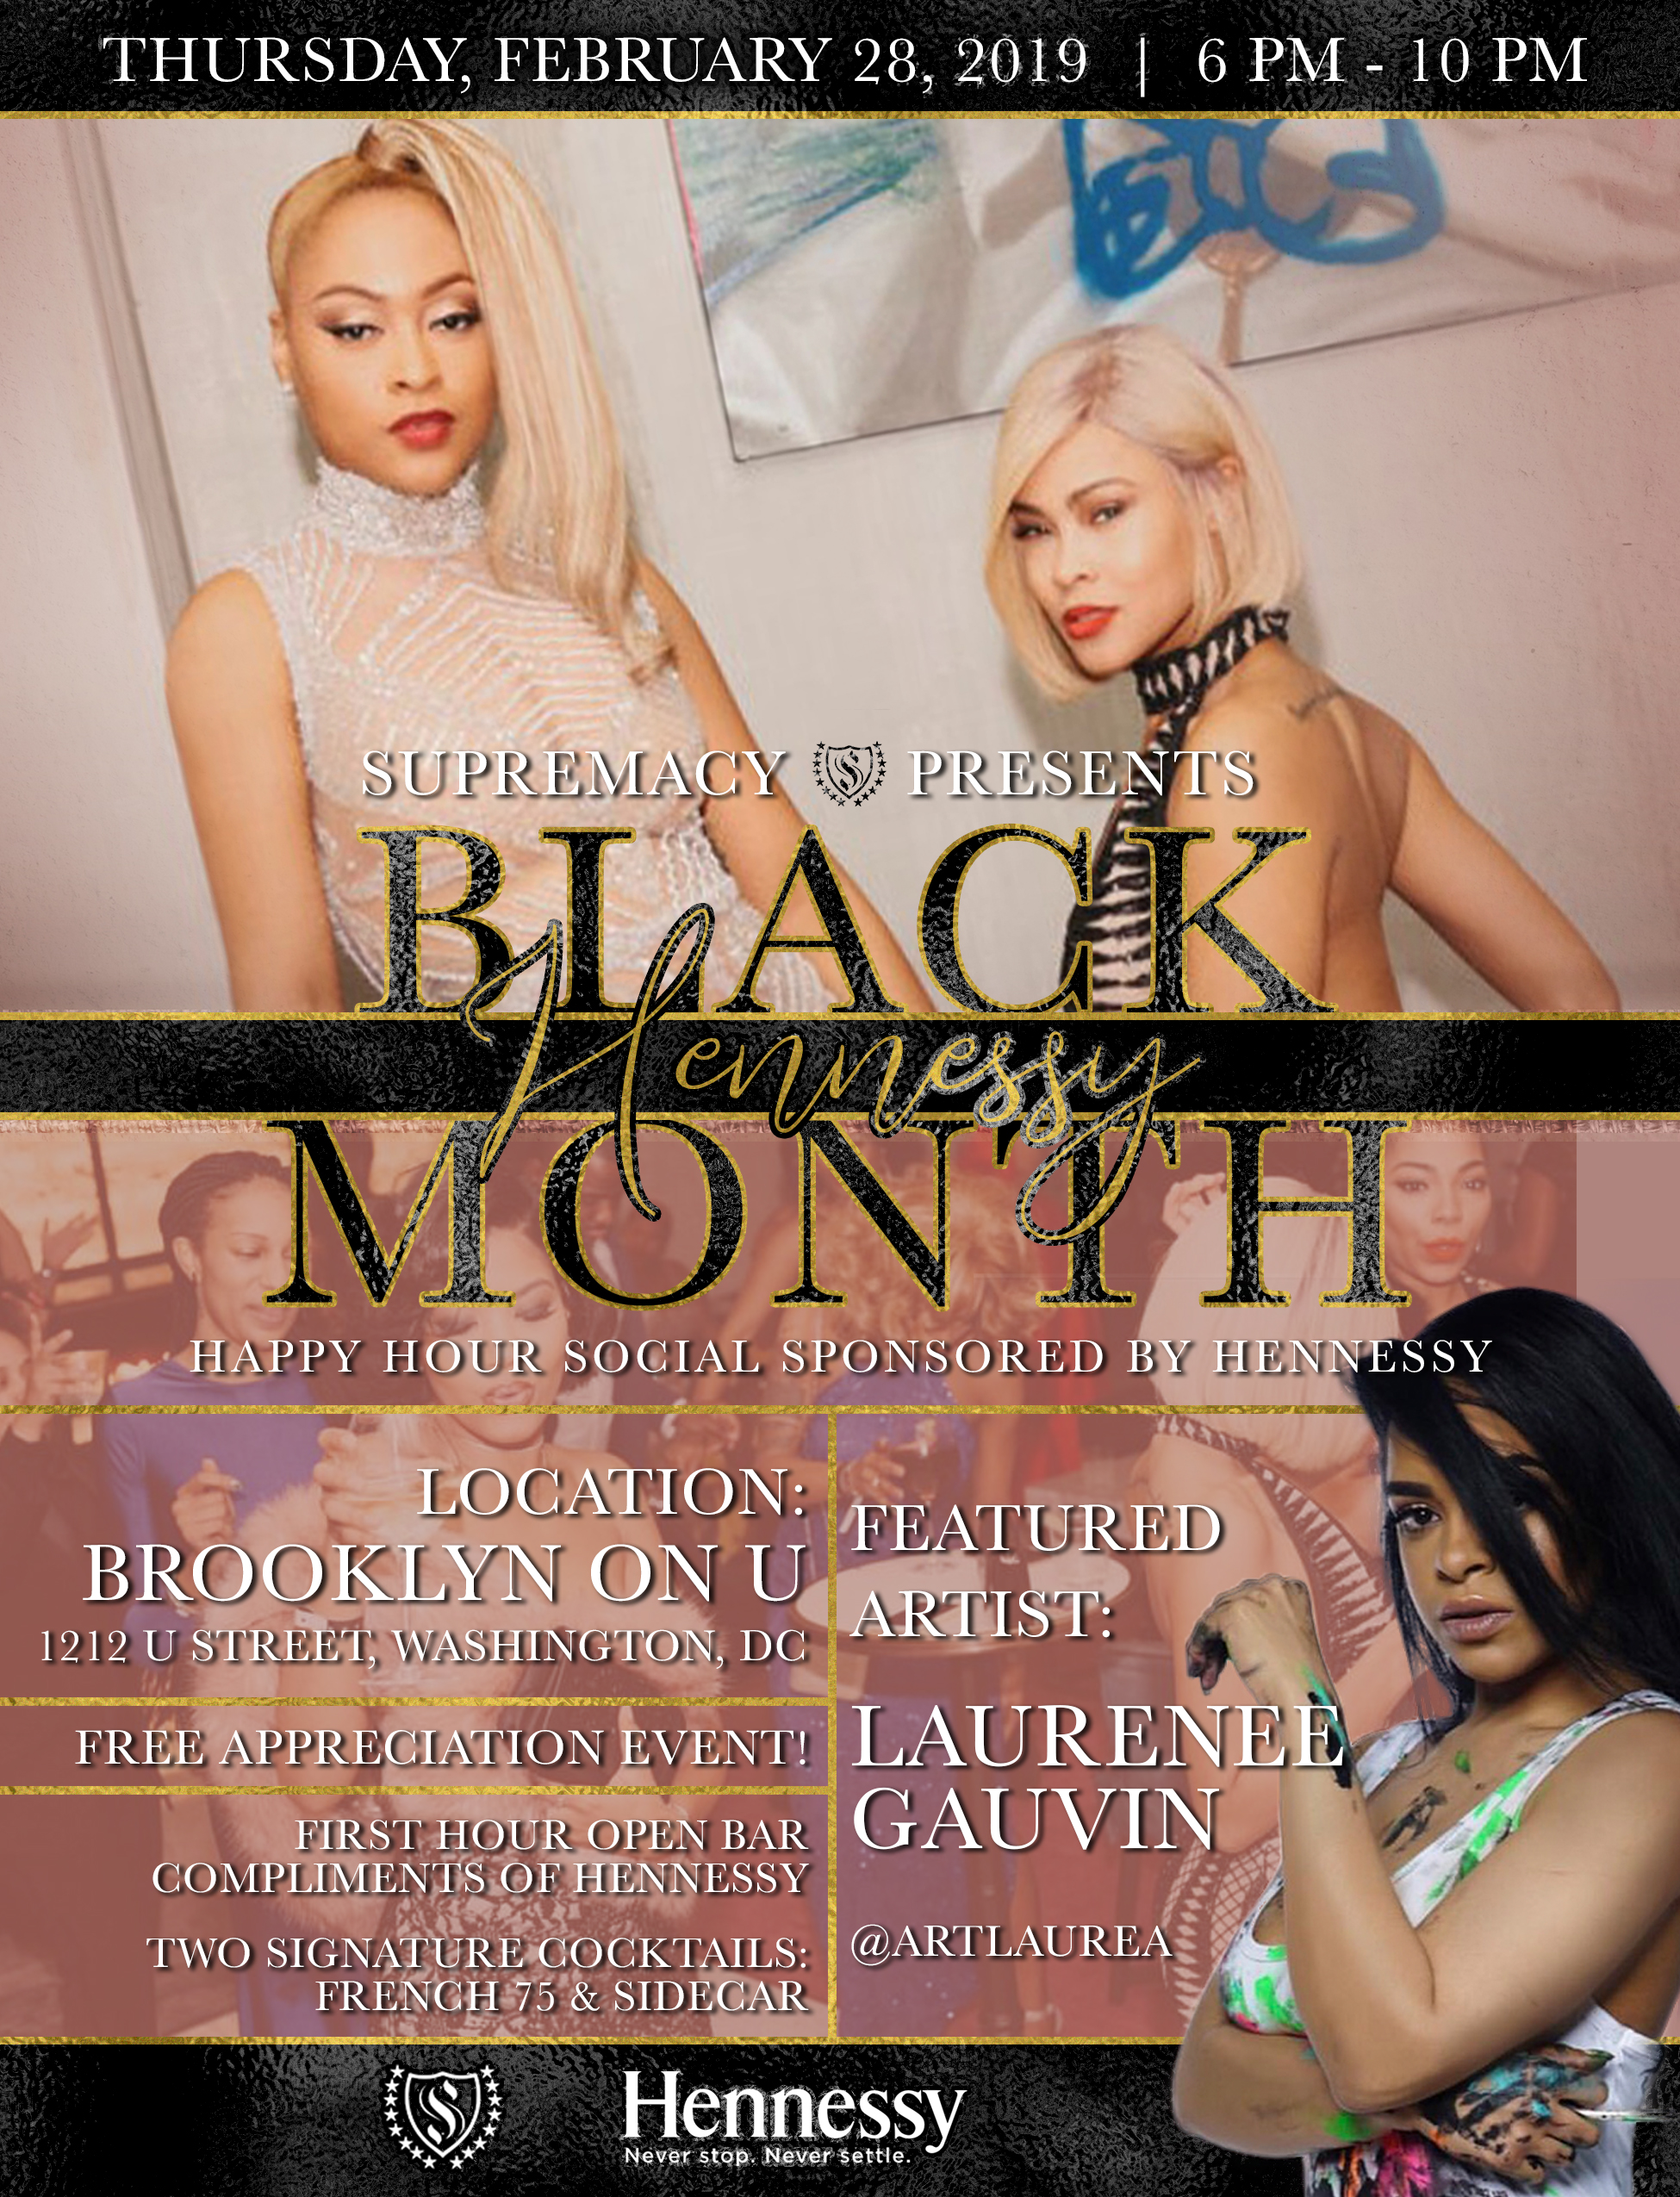 SP Black Hennessy Month Flyer draft 2